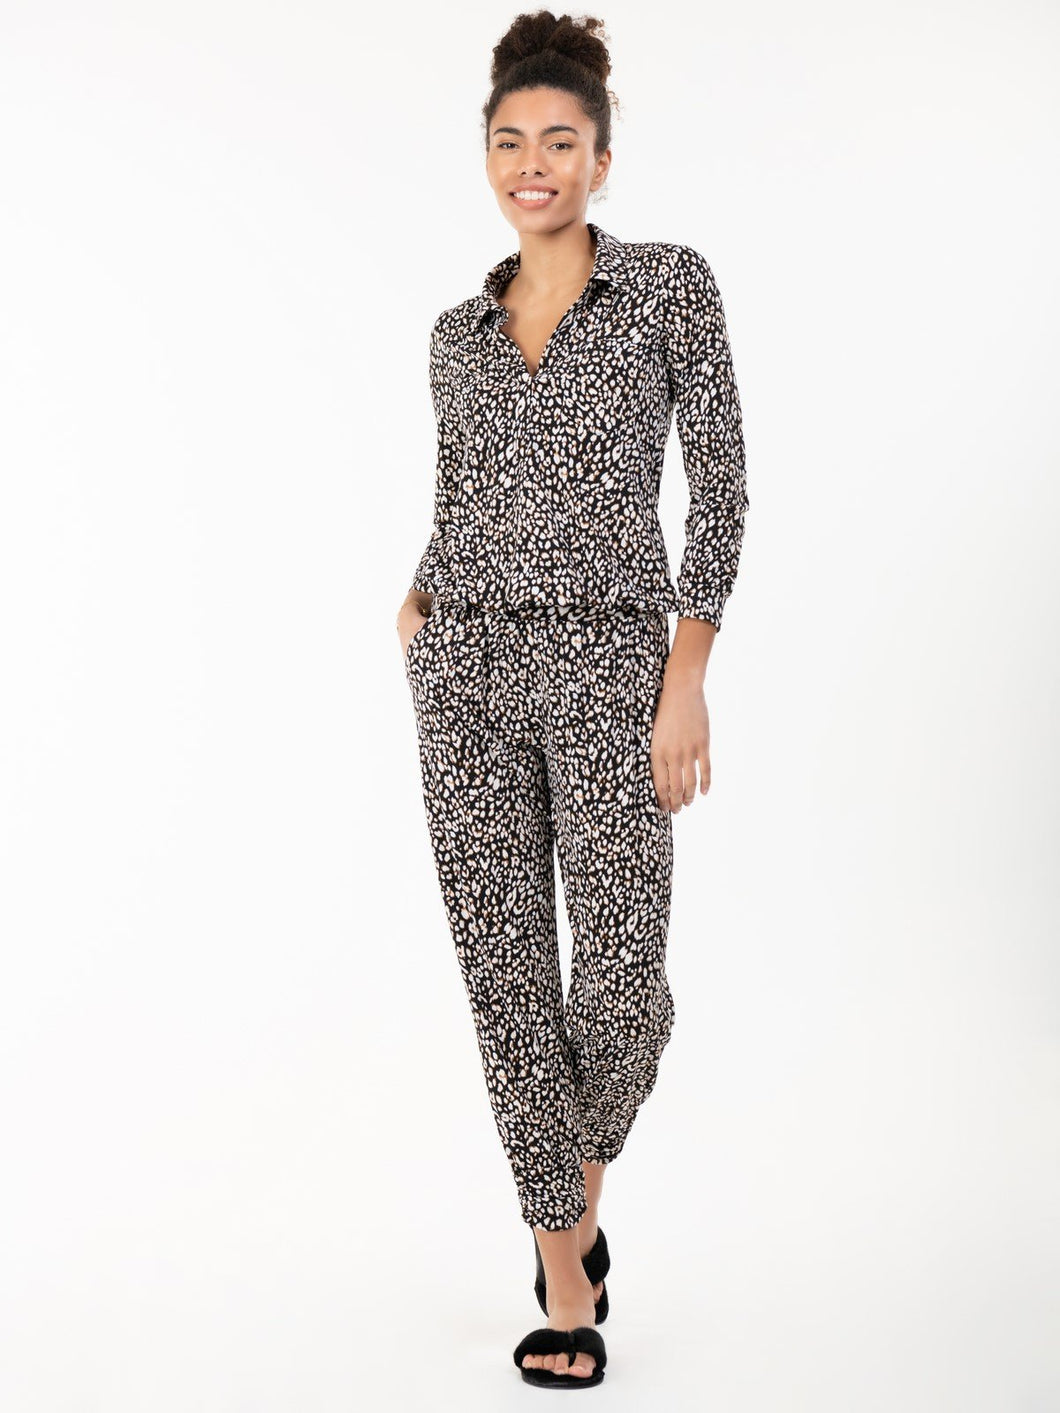 Jolie Moi Printed Blouse & Pants Co-ords Jersey Set, Black Animal